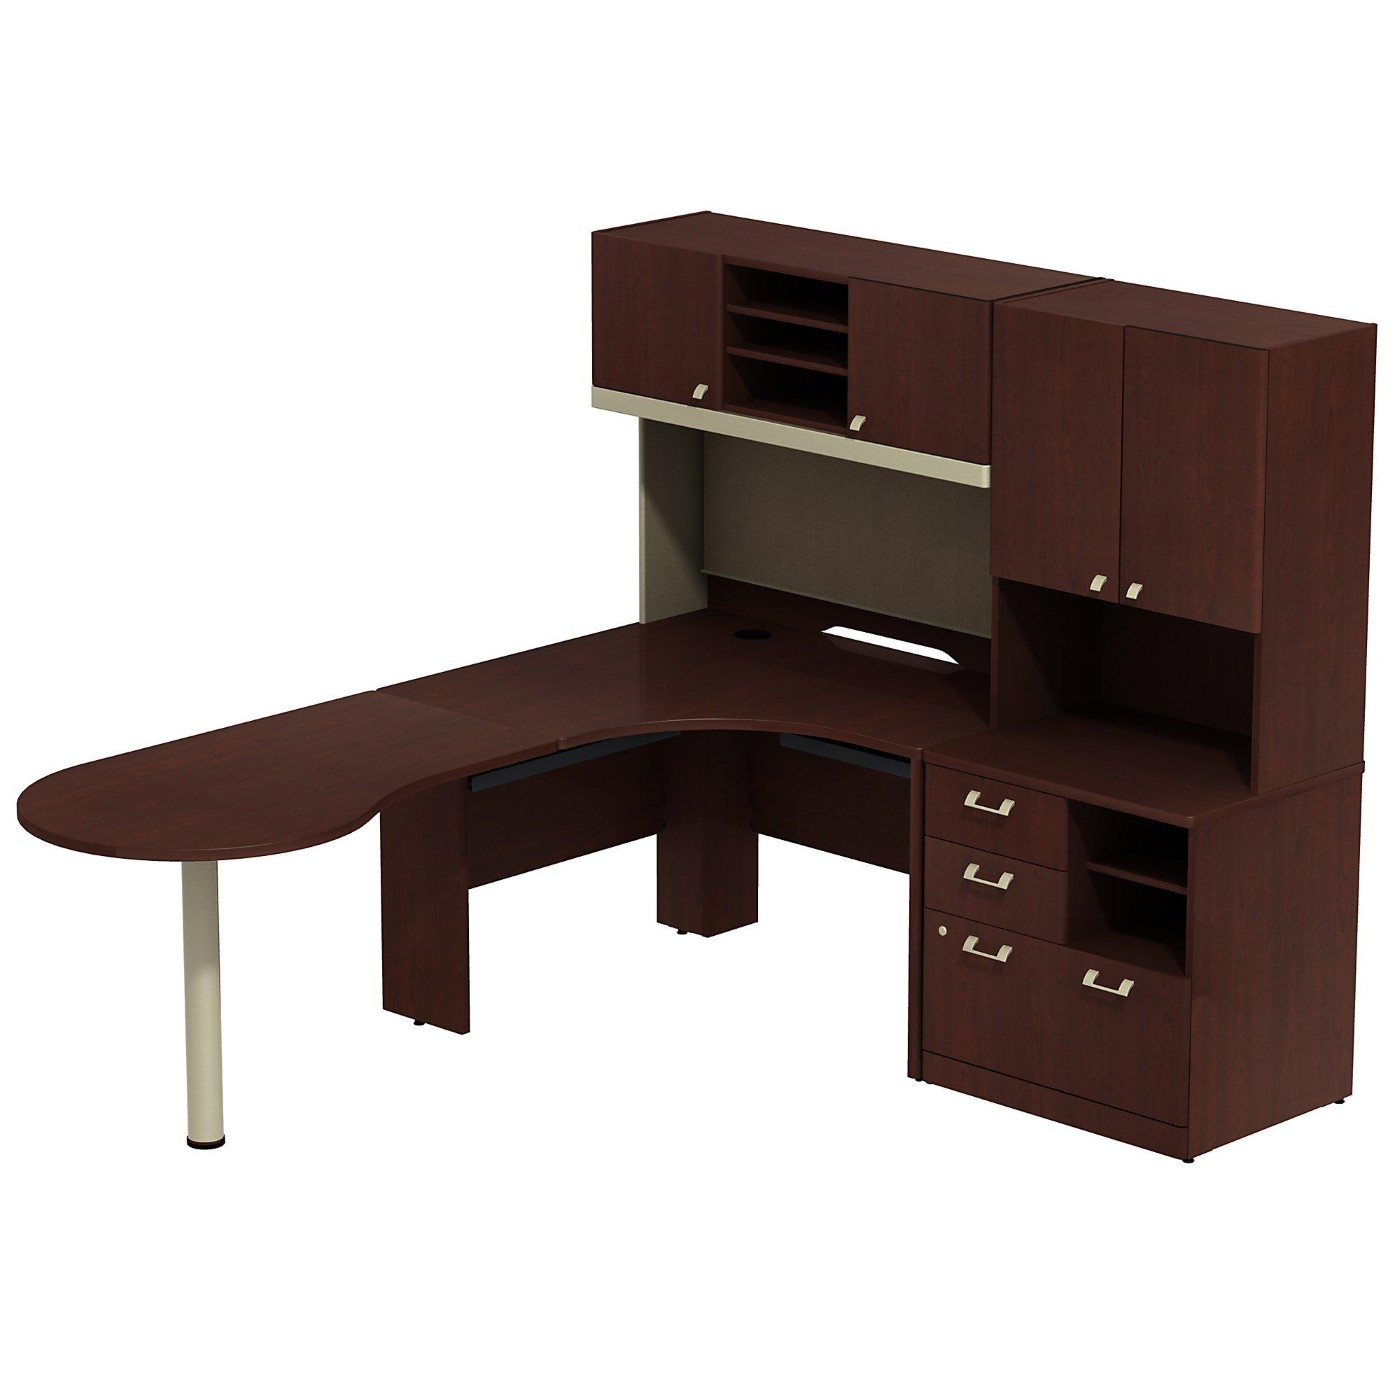 <font color=#c60><b>BUSH BUSINESS FURNITURE QUANTUM RIGHT HANDED PENINSULA L SHAPED DESK WITH 48W HUTCH AND 30W STORAGE CABINET WITH 30W HUTCH. FREE SHIPPING</font></b>